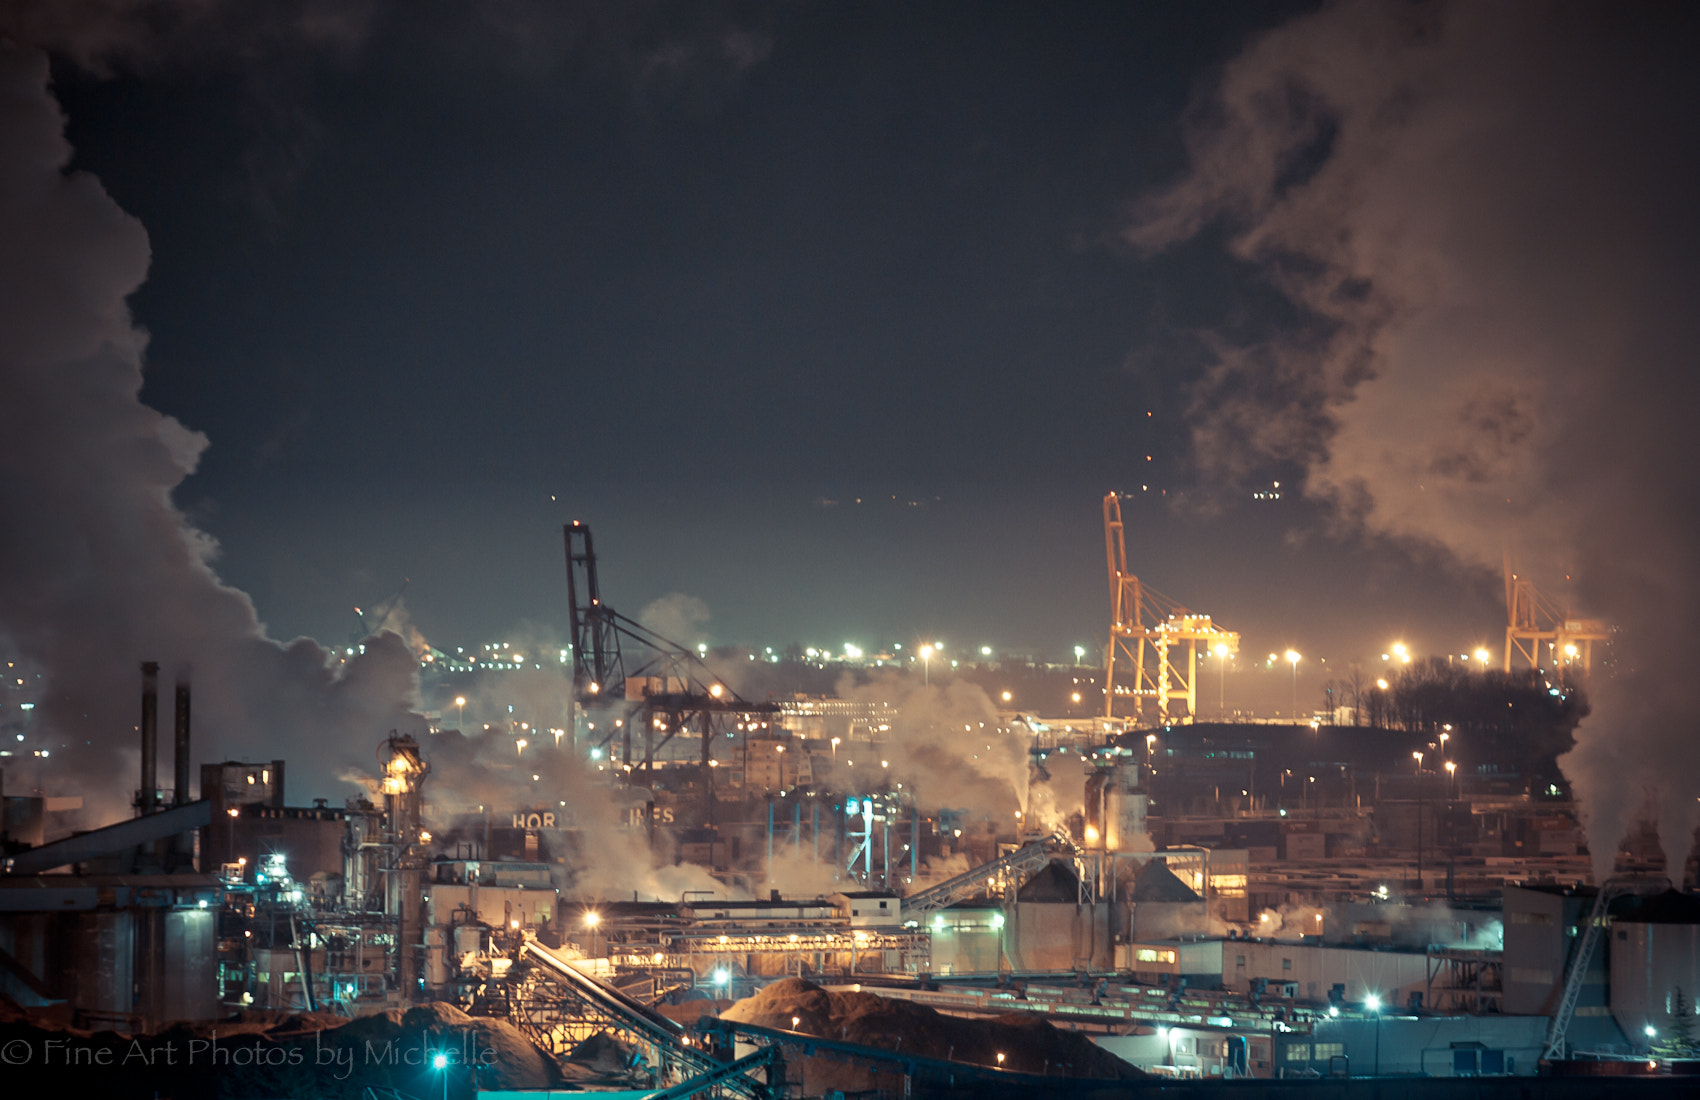 Photograph Industrial Tacoma by Michelle Stevenson on 500px